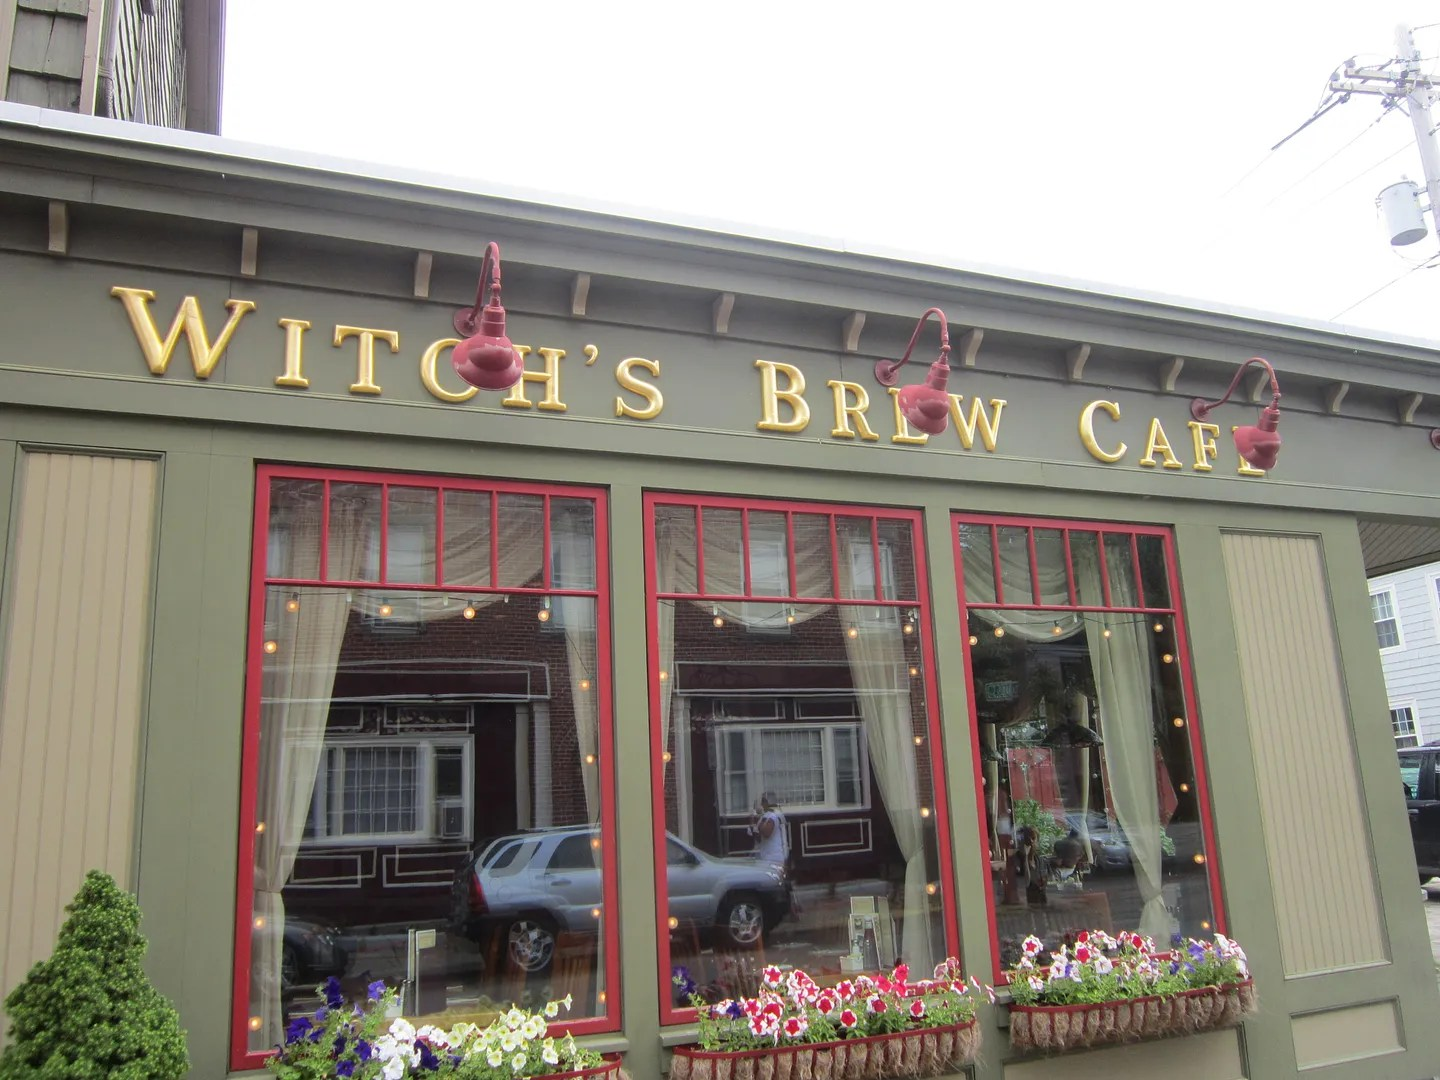 Witch's Brew Cafe, Salem, Massachusetts